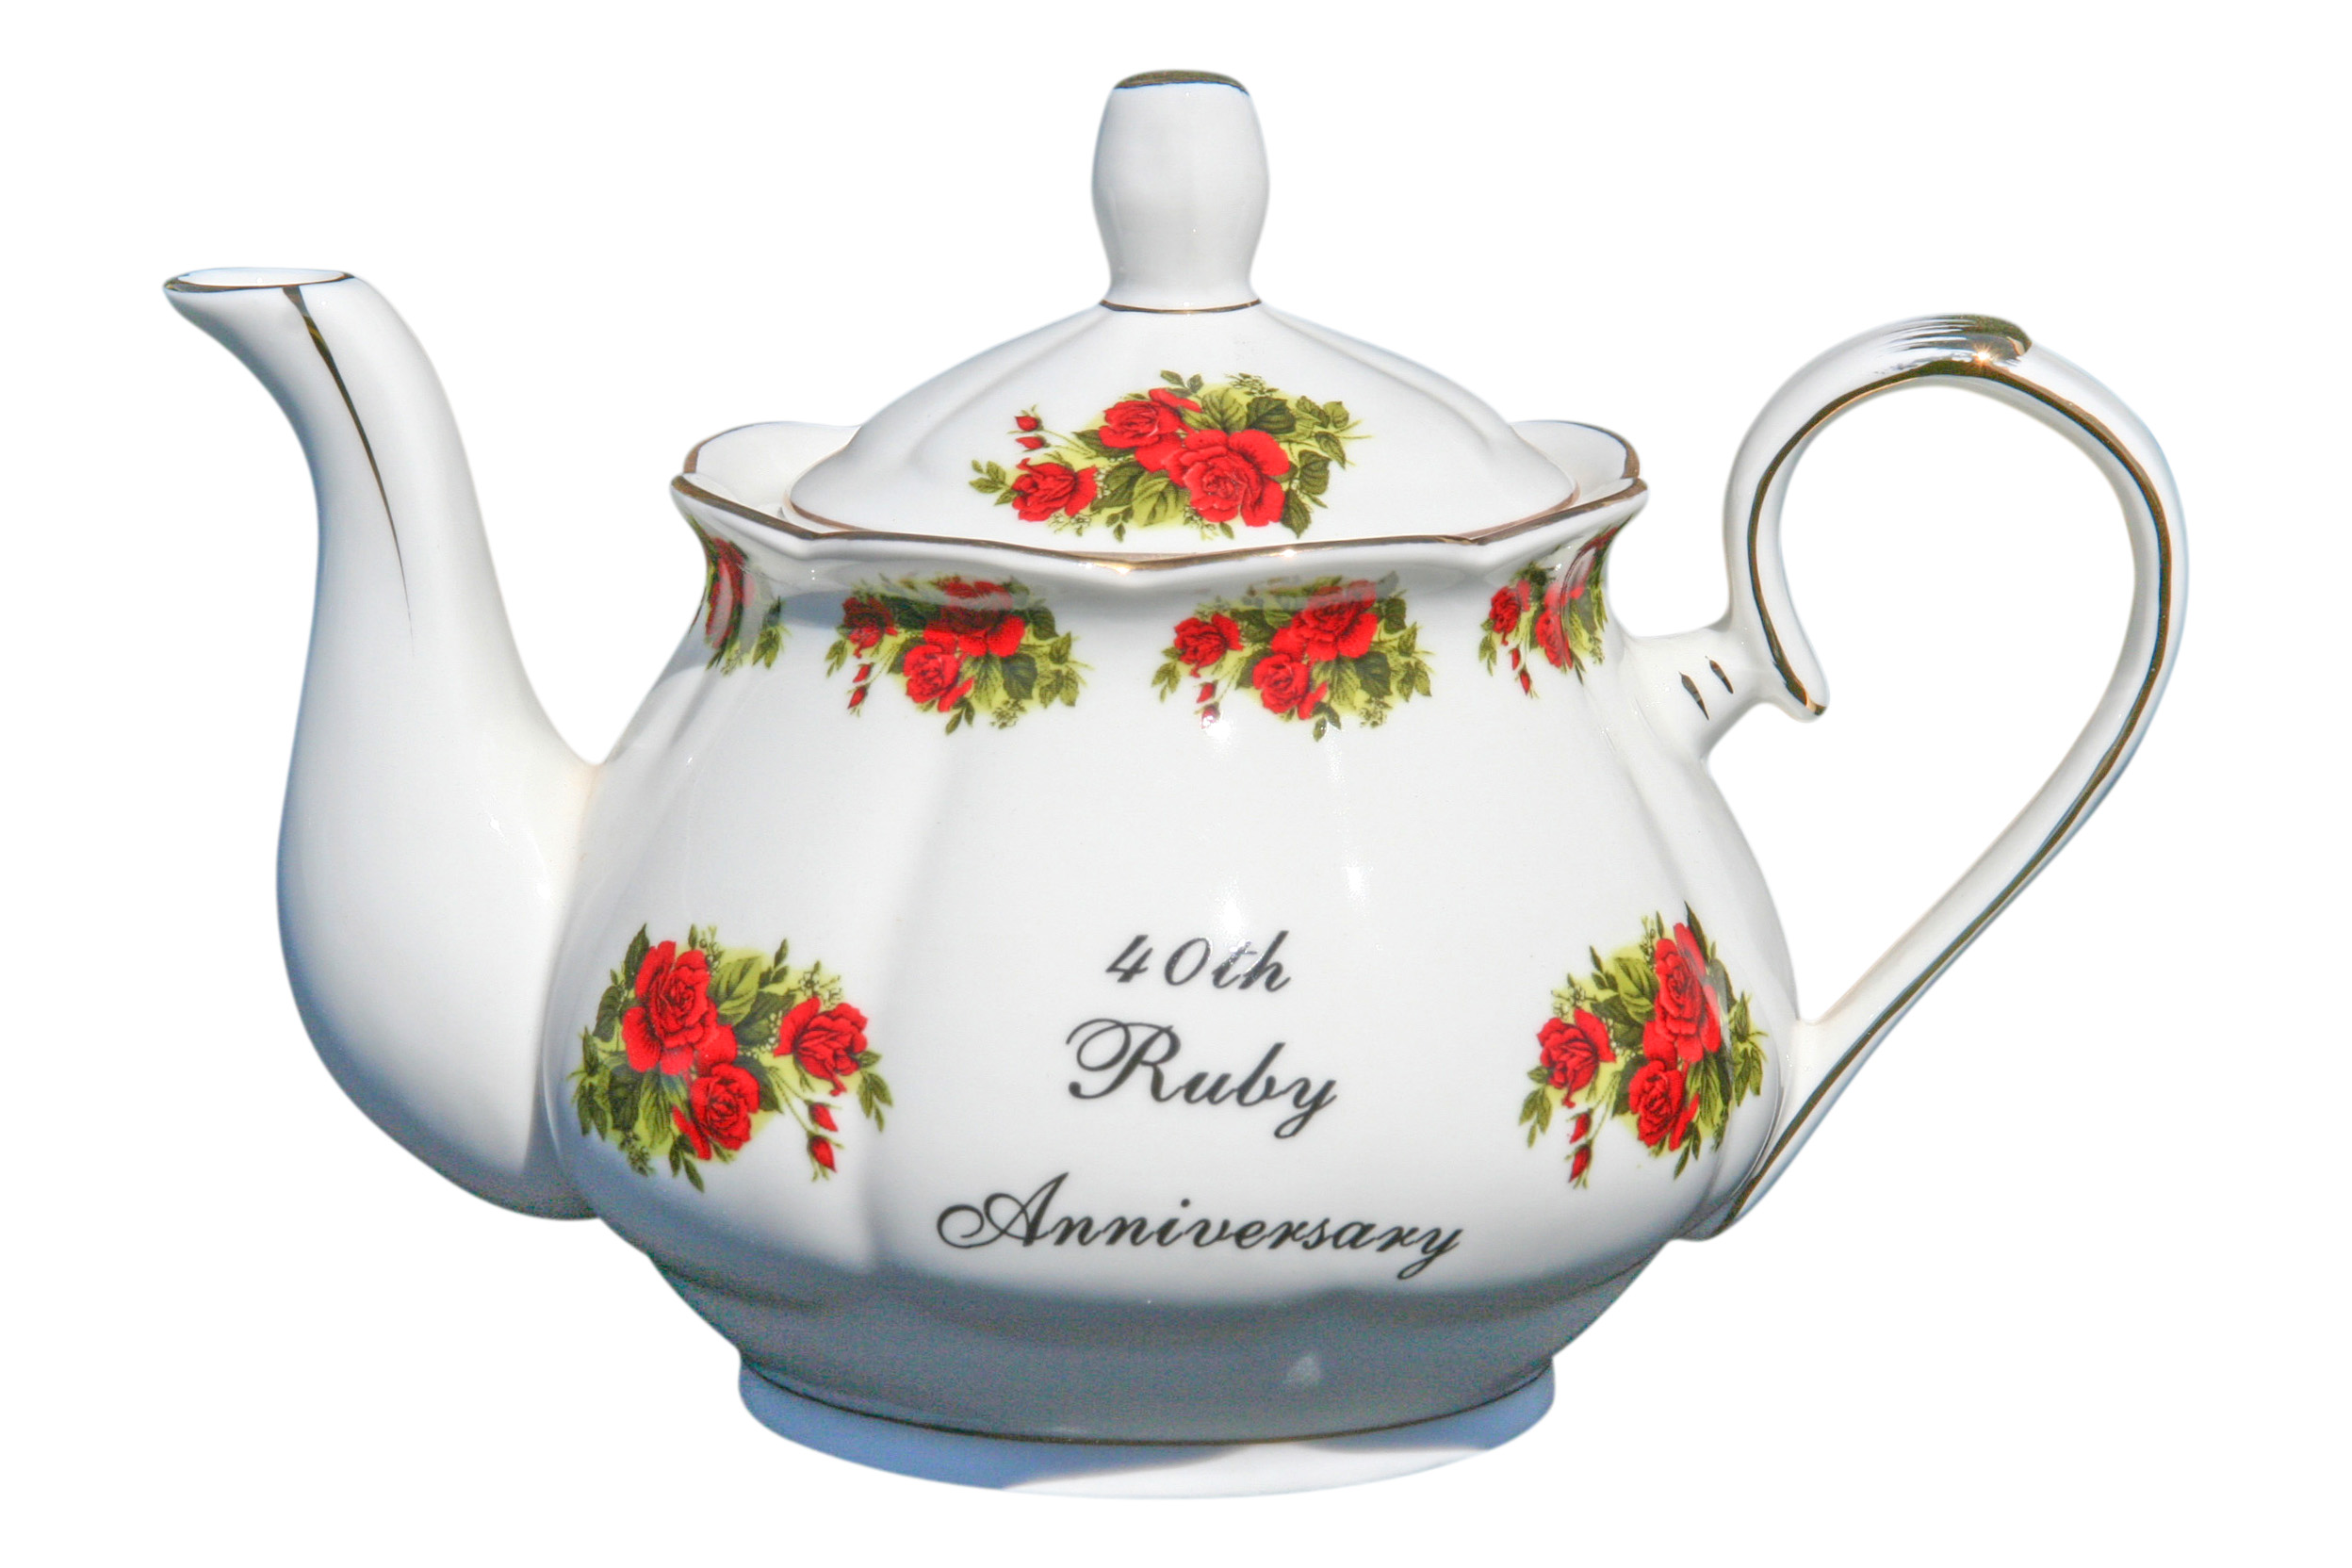 40th Anniversary 2 cup Teapot